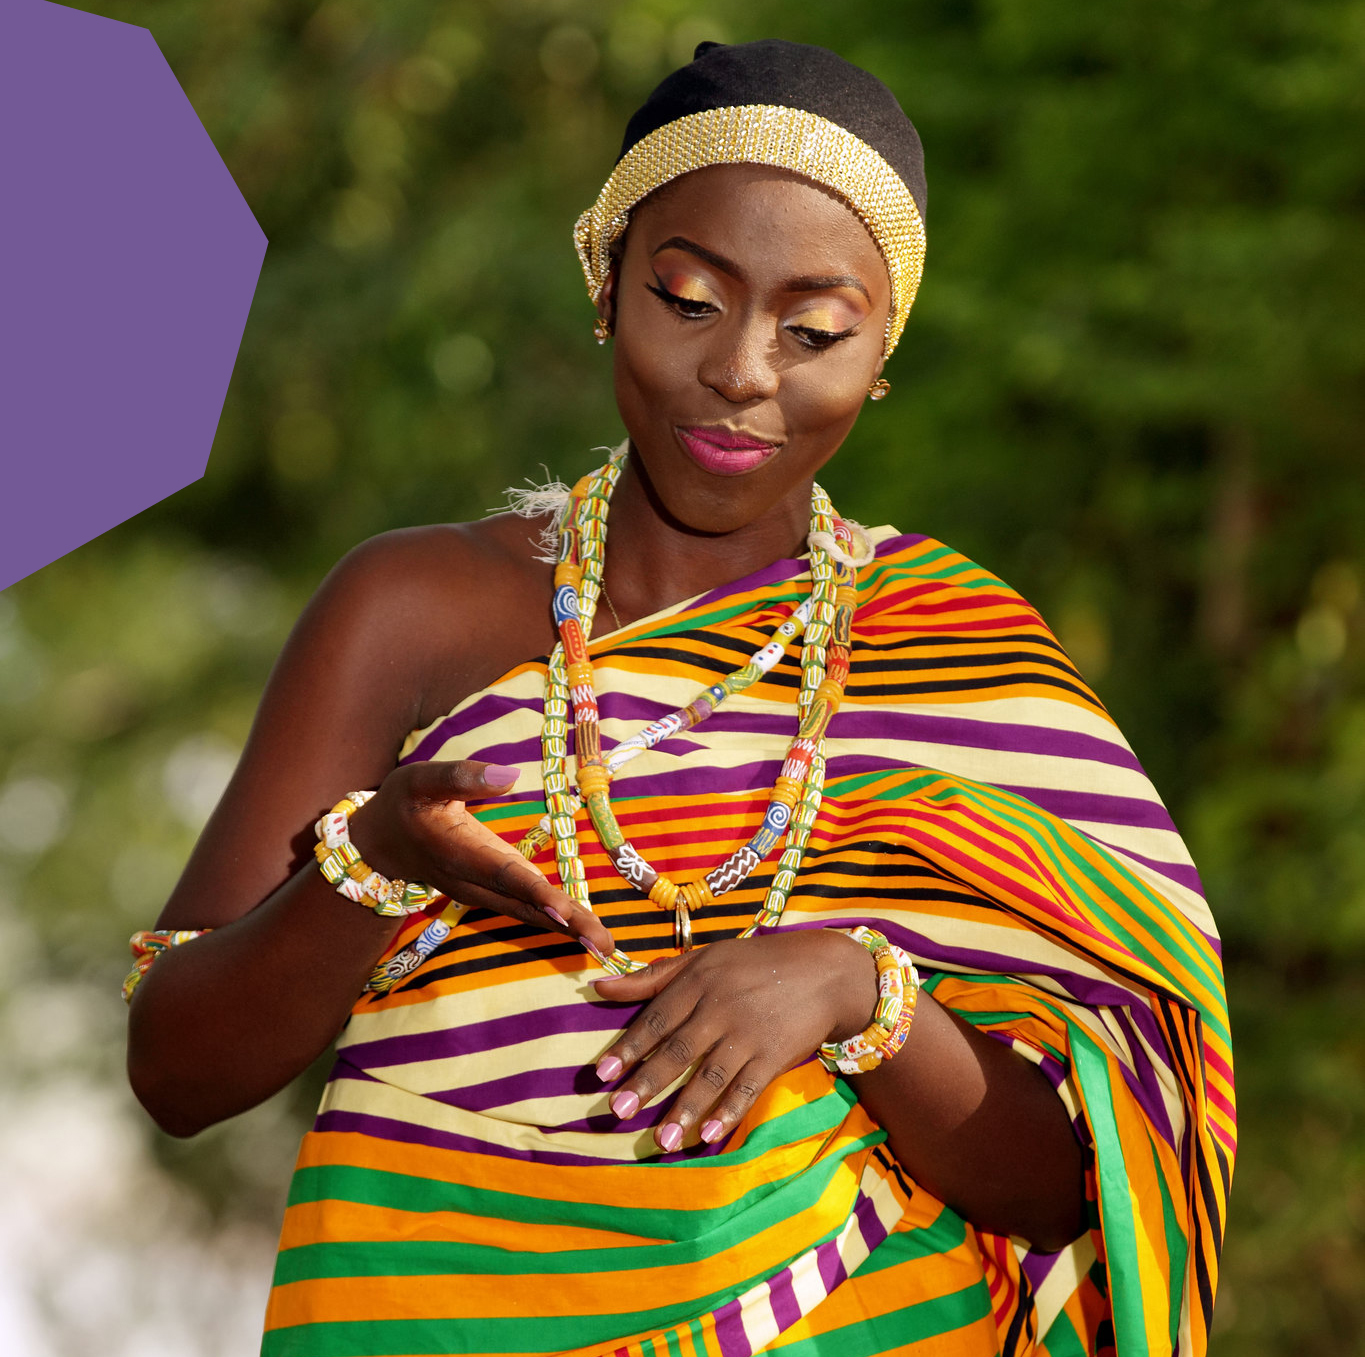 A Ghanaian woman in a kente cloth of stripes looking down